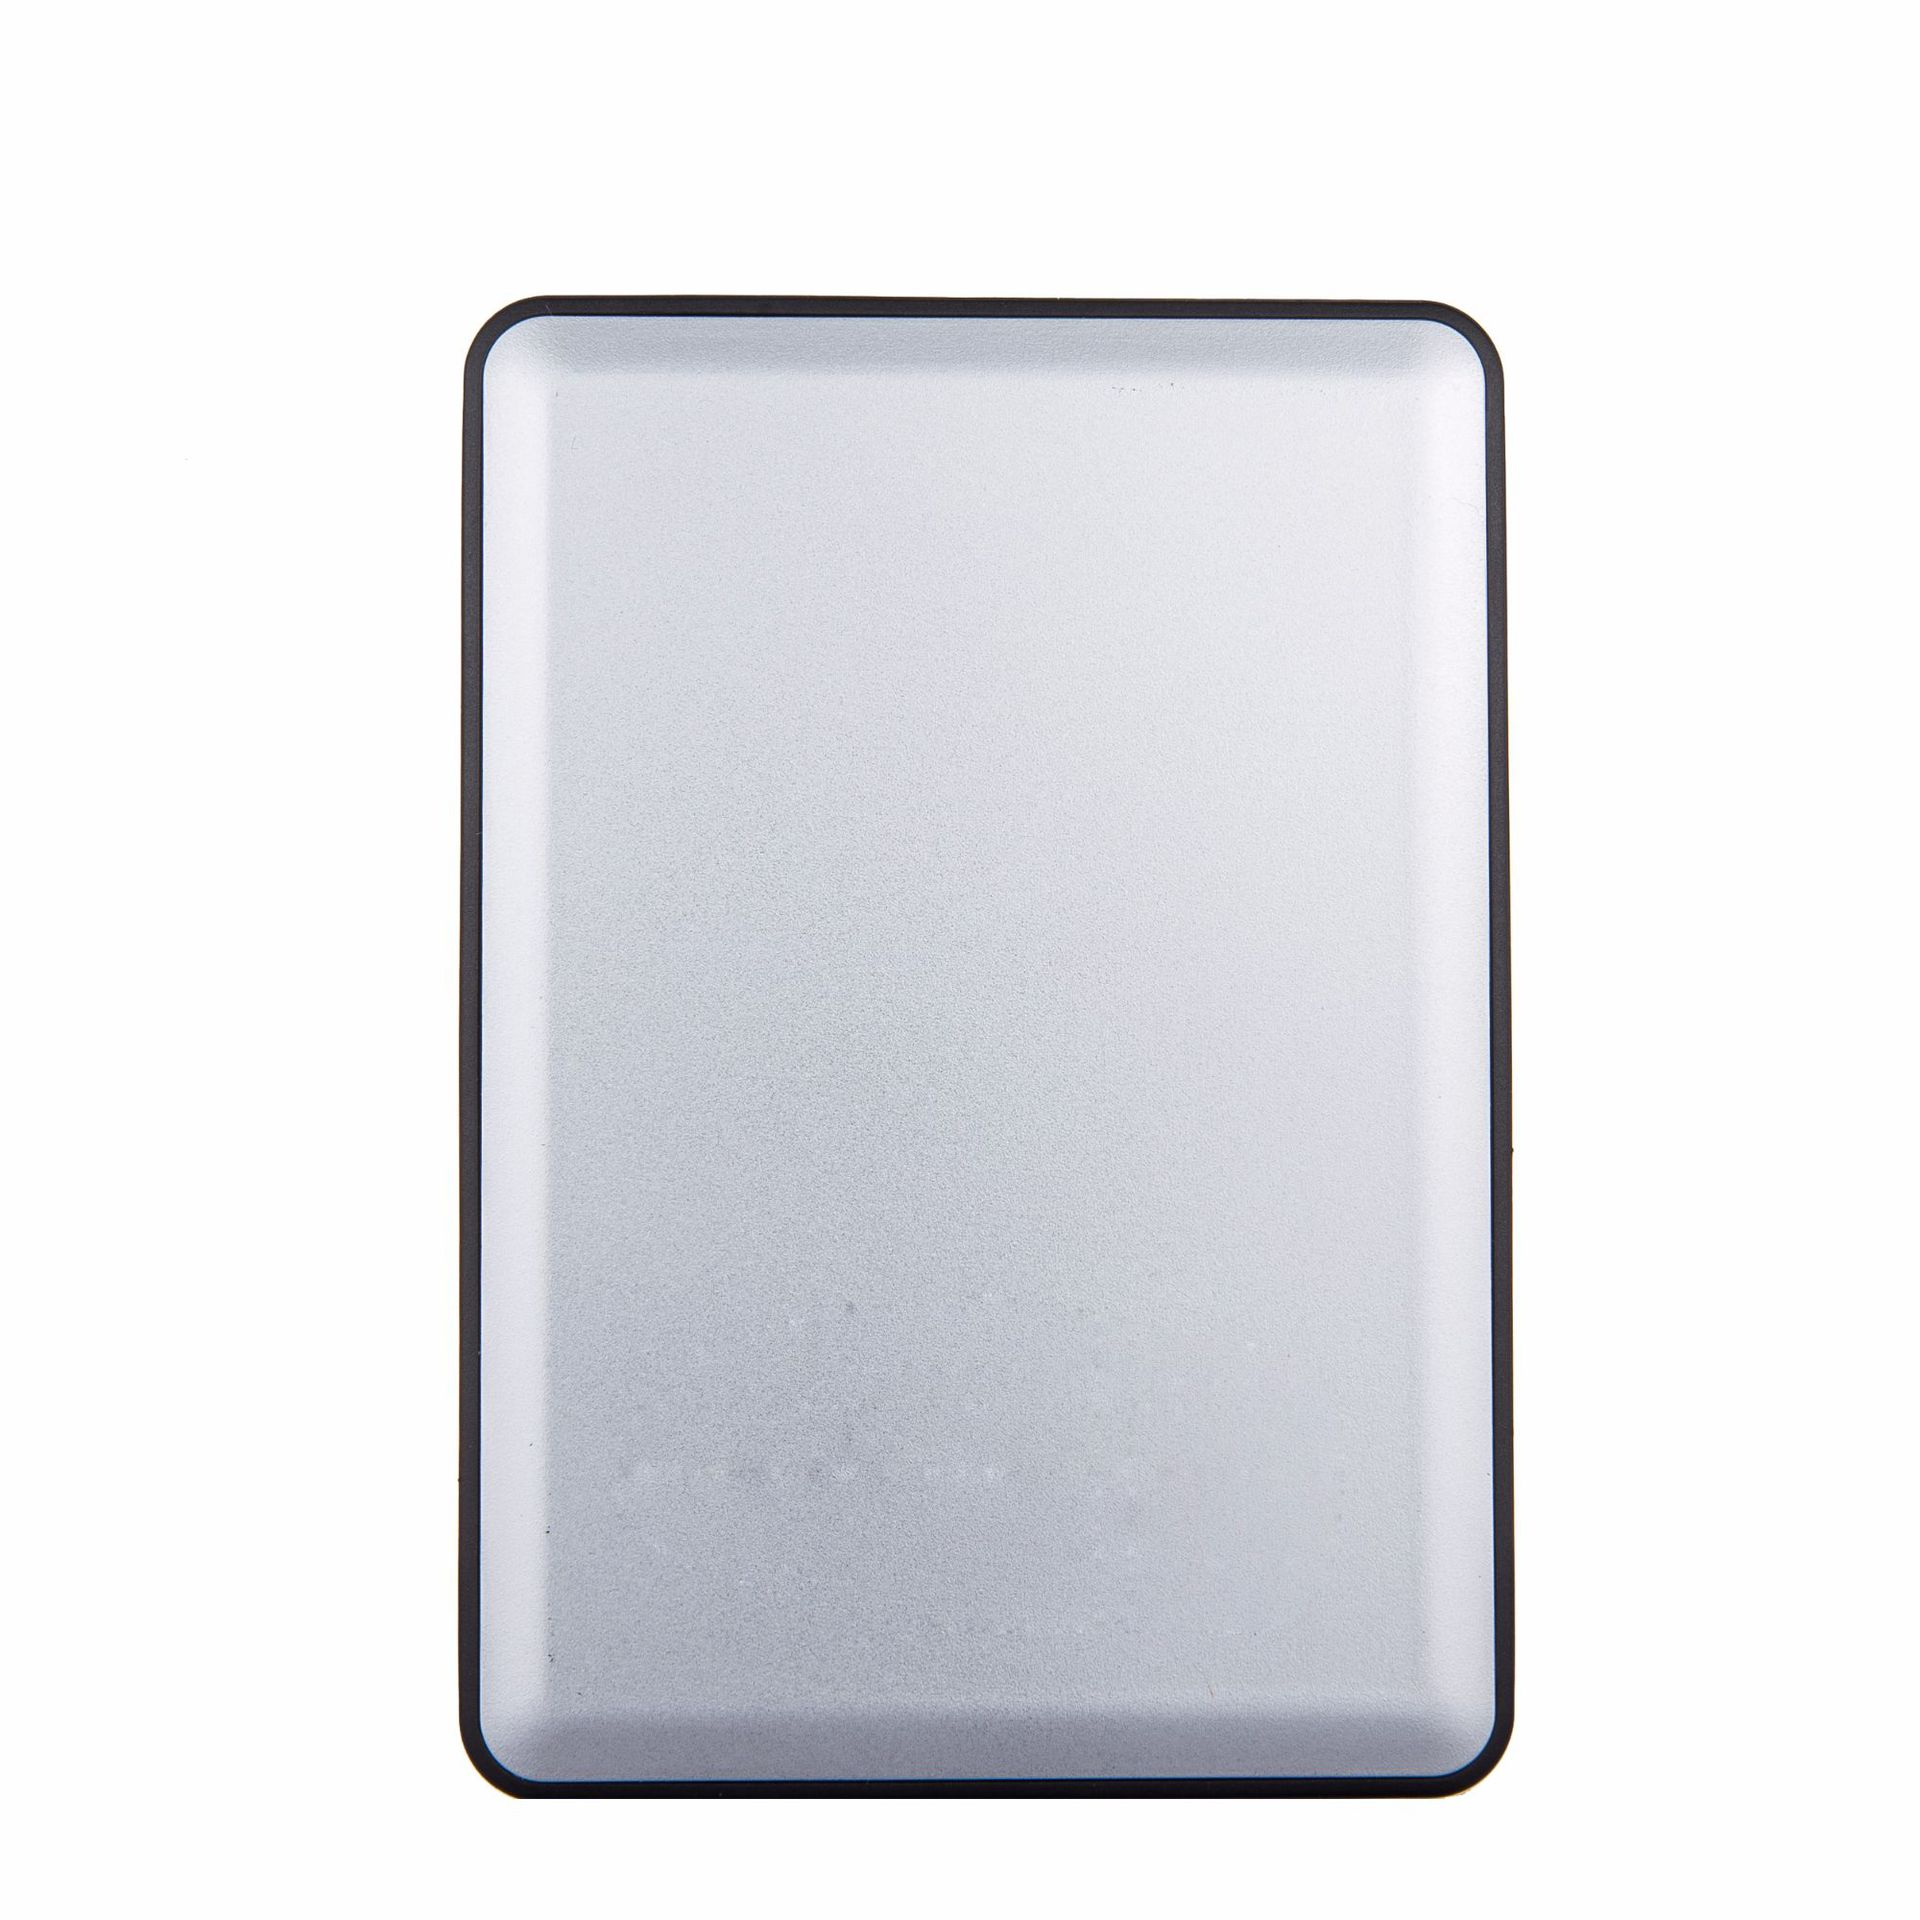 GOBUYBA Mobile hard disk 320G hard disk foreign trade hard disk 320G gift OEM customized high-speed